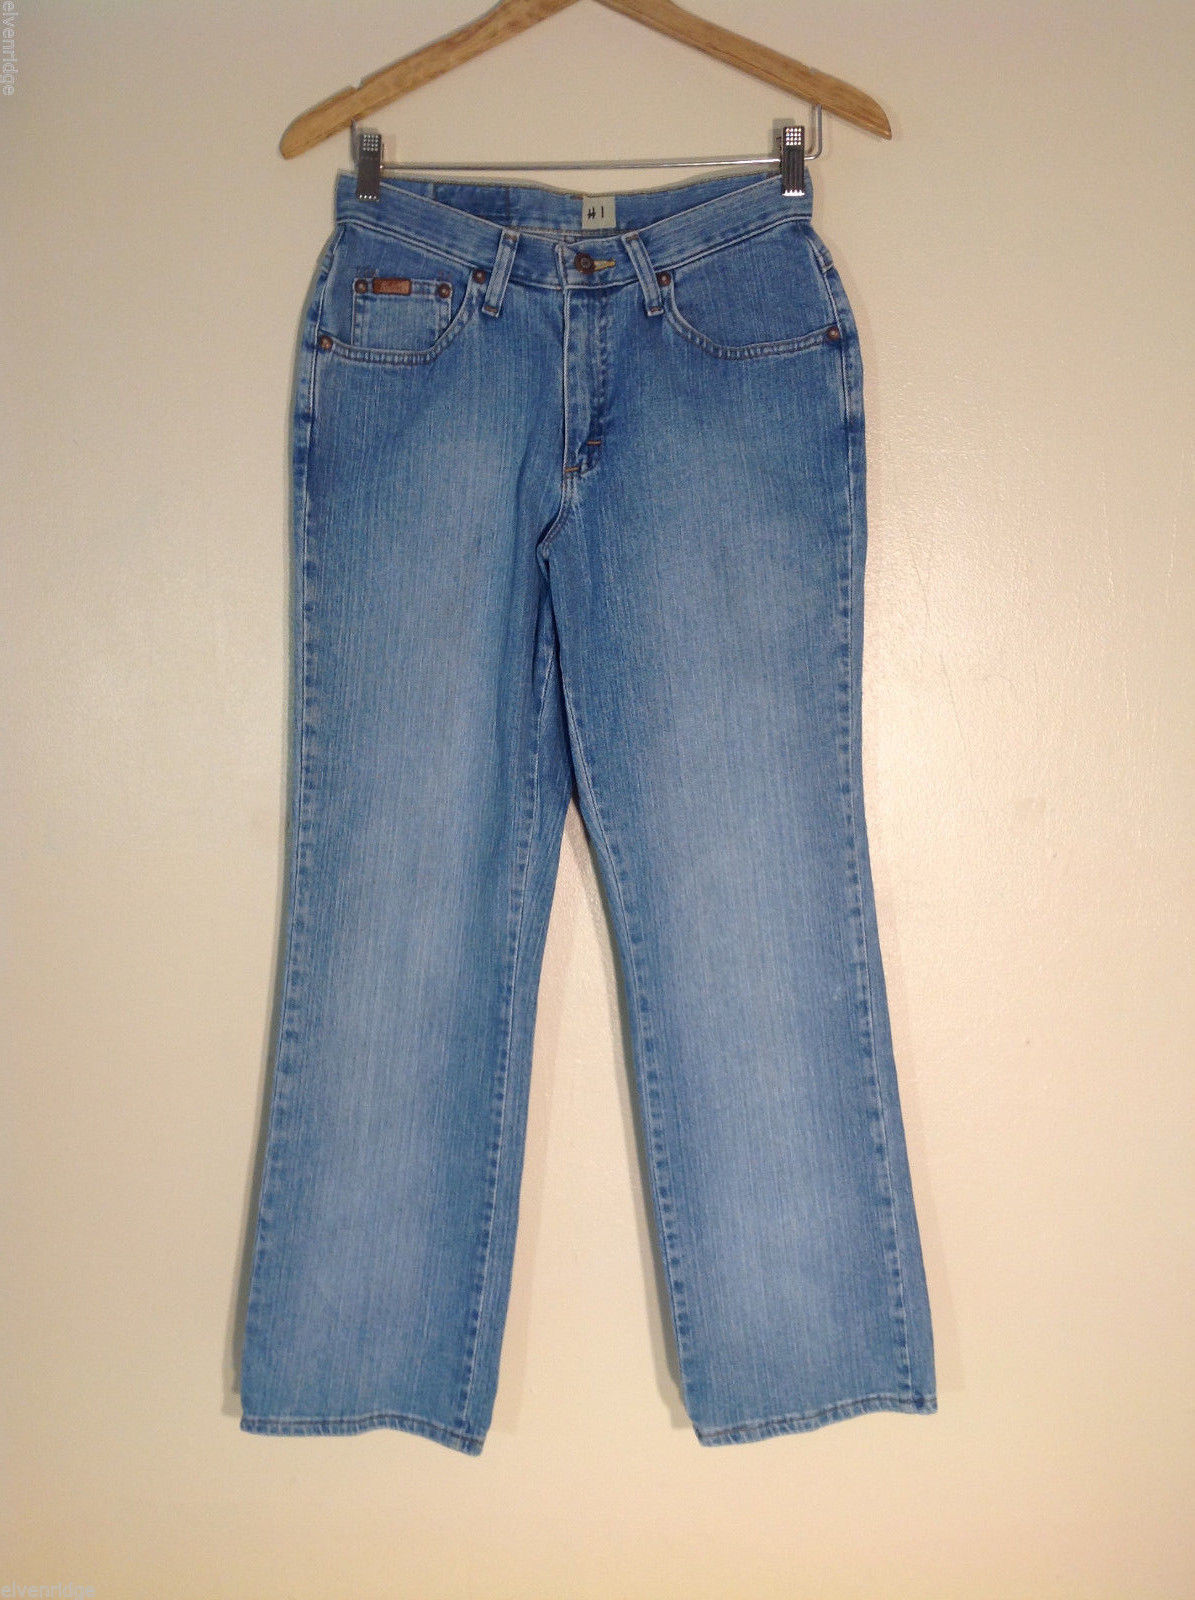 "Riders Women's Petite Size 8 Denim Jeans Light Blue Wash 10"" High Rise Boot Cut"